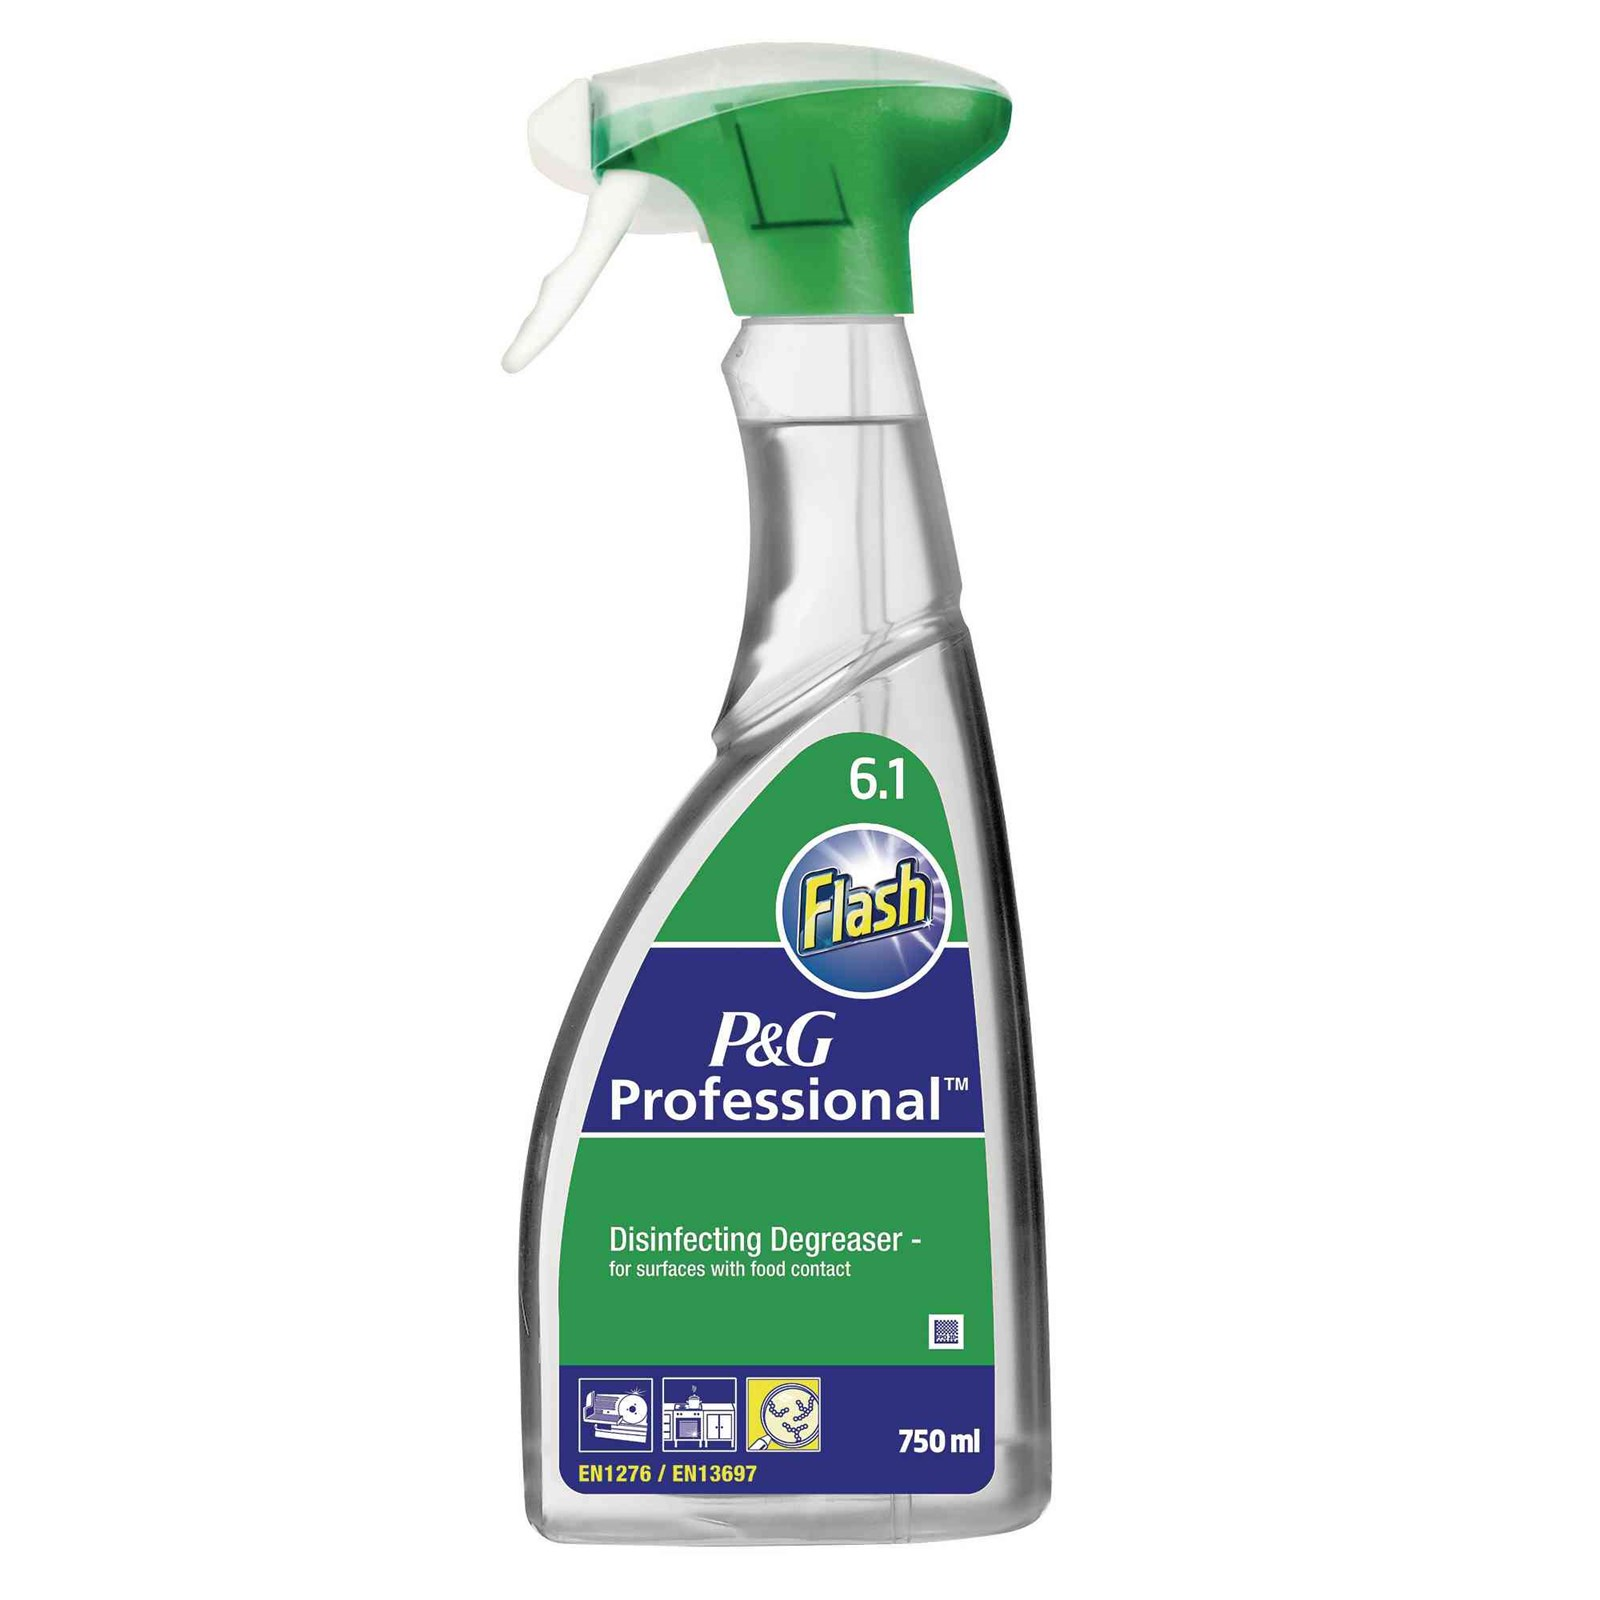 P & G Professional Flash Disinfecting Degreaser - 6 x 750ml